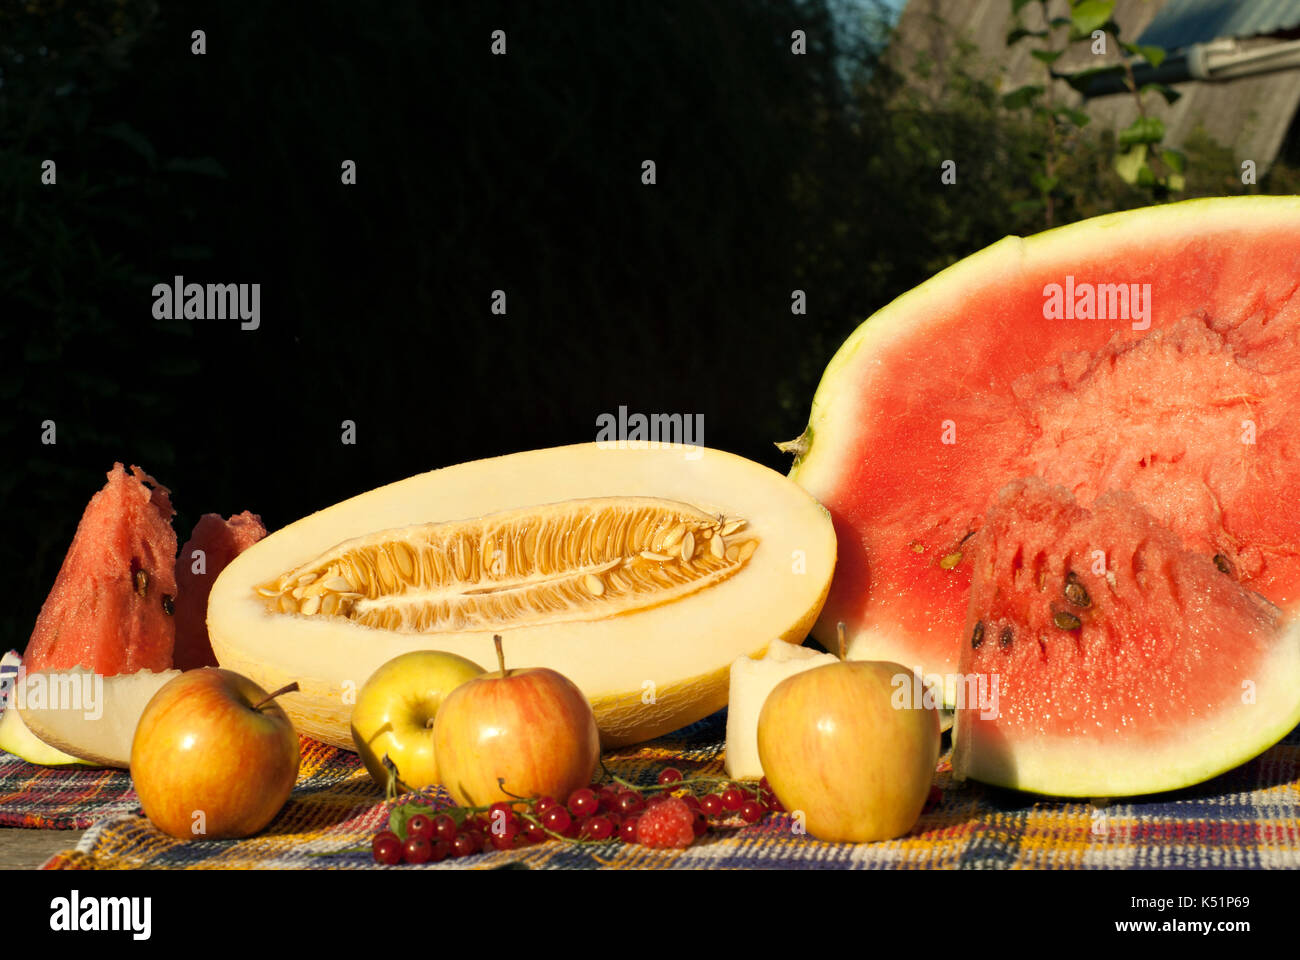 Still life with cuted melon and watermelon, apples, red currants and raspberries - Stock Image